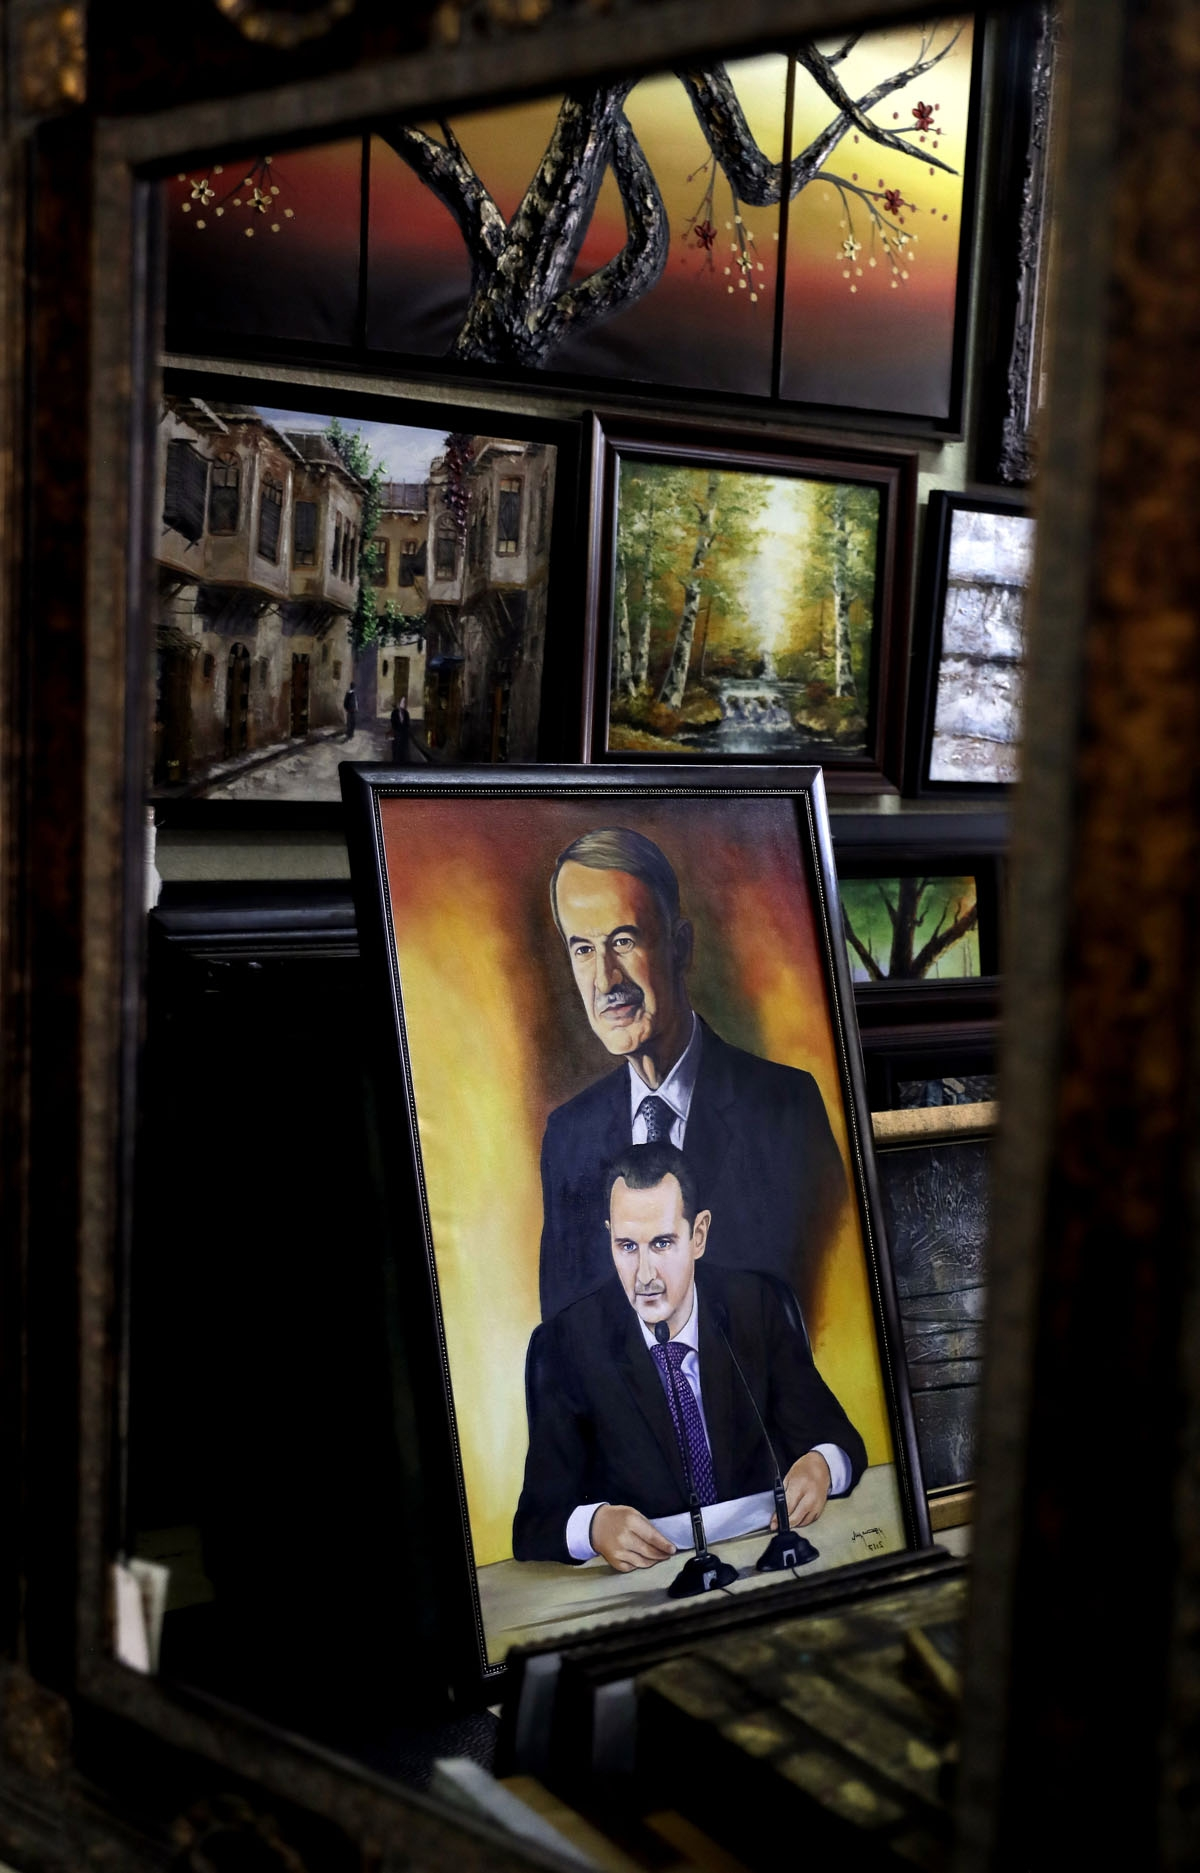 An oil painting depicting a portrait of Syrian President Bashar al-Assad and his late father Hafez al-Assad are seen at an art gallery in the capital Damascus on July 3, 2017. / AFP PHOTO / Joseph EID